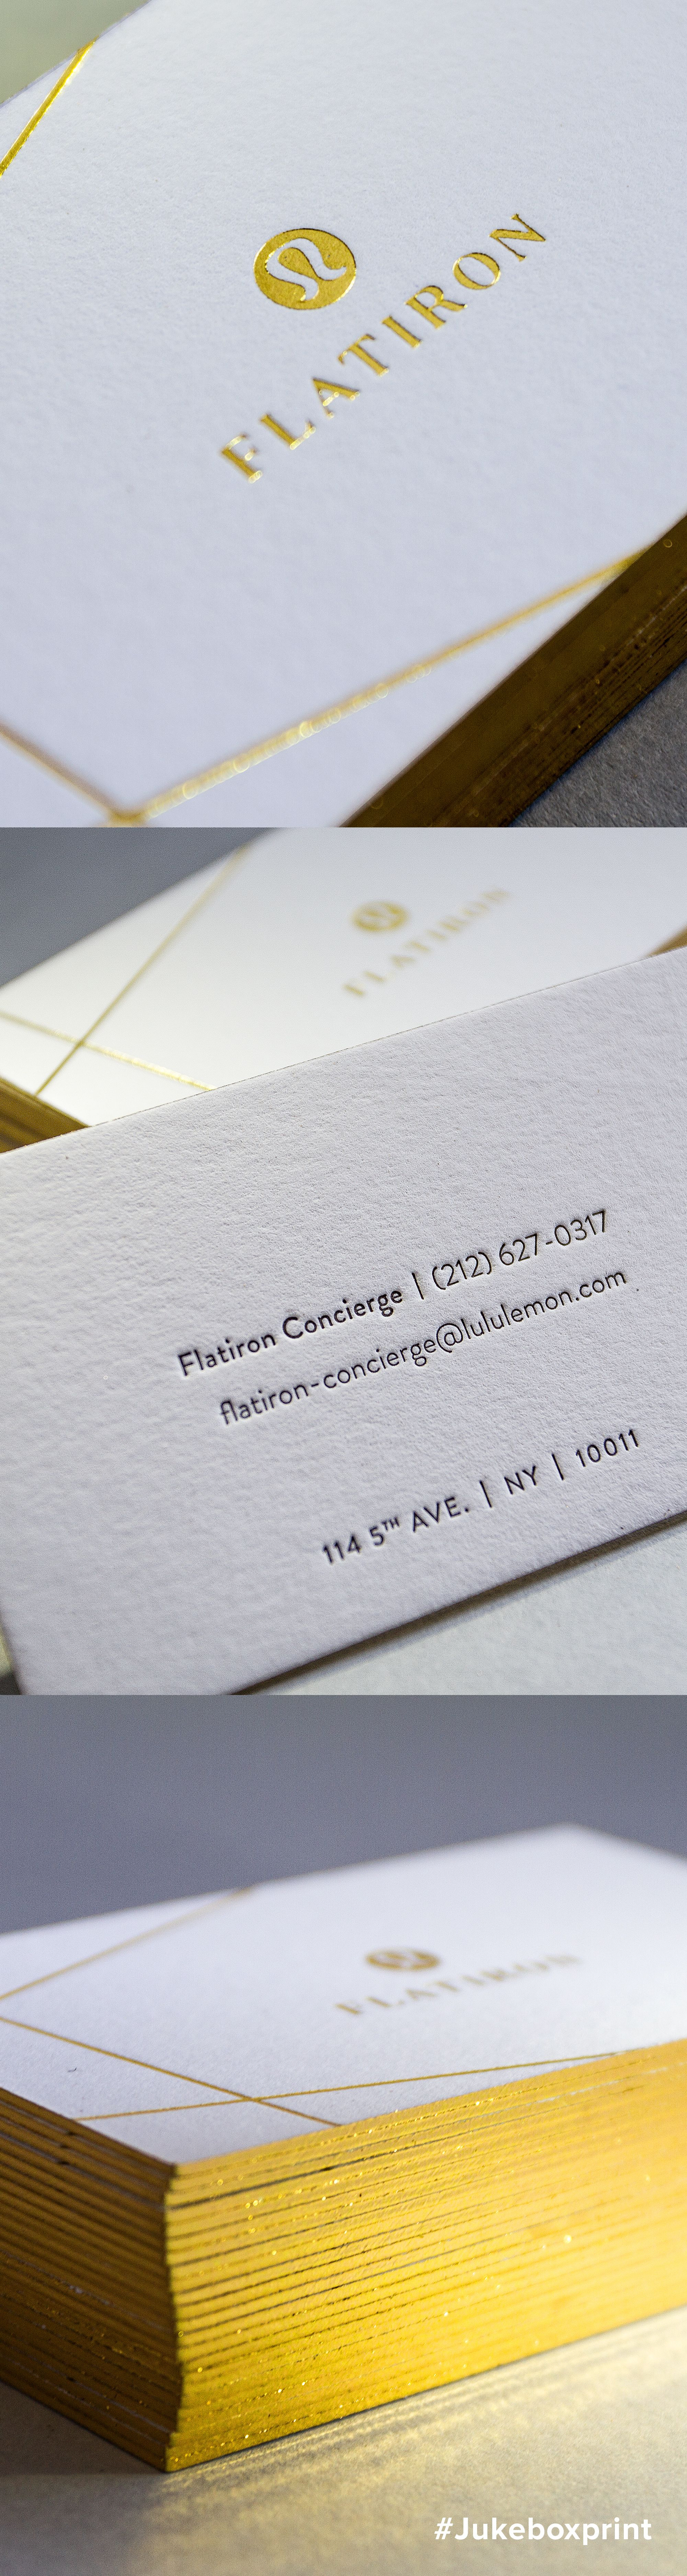 Stunning gold foil and letterpress business cards produced for stunning gold foil and letterpress business cards produced for lululemons flagship flatiron store in nyc produced by jukebox print reheart Image collections